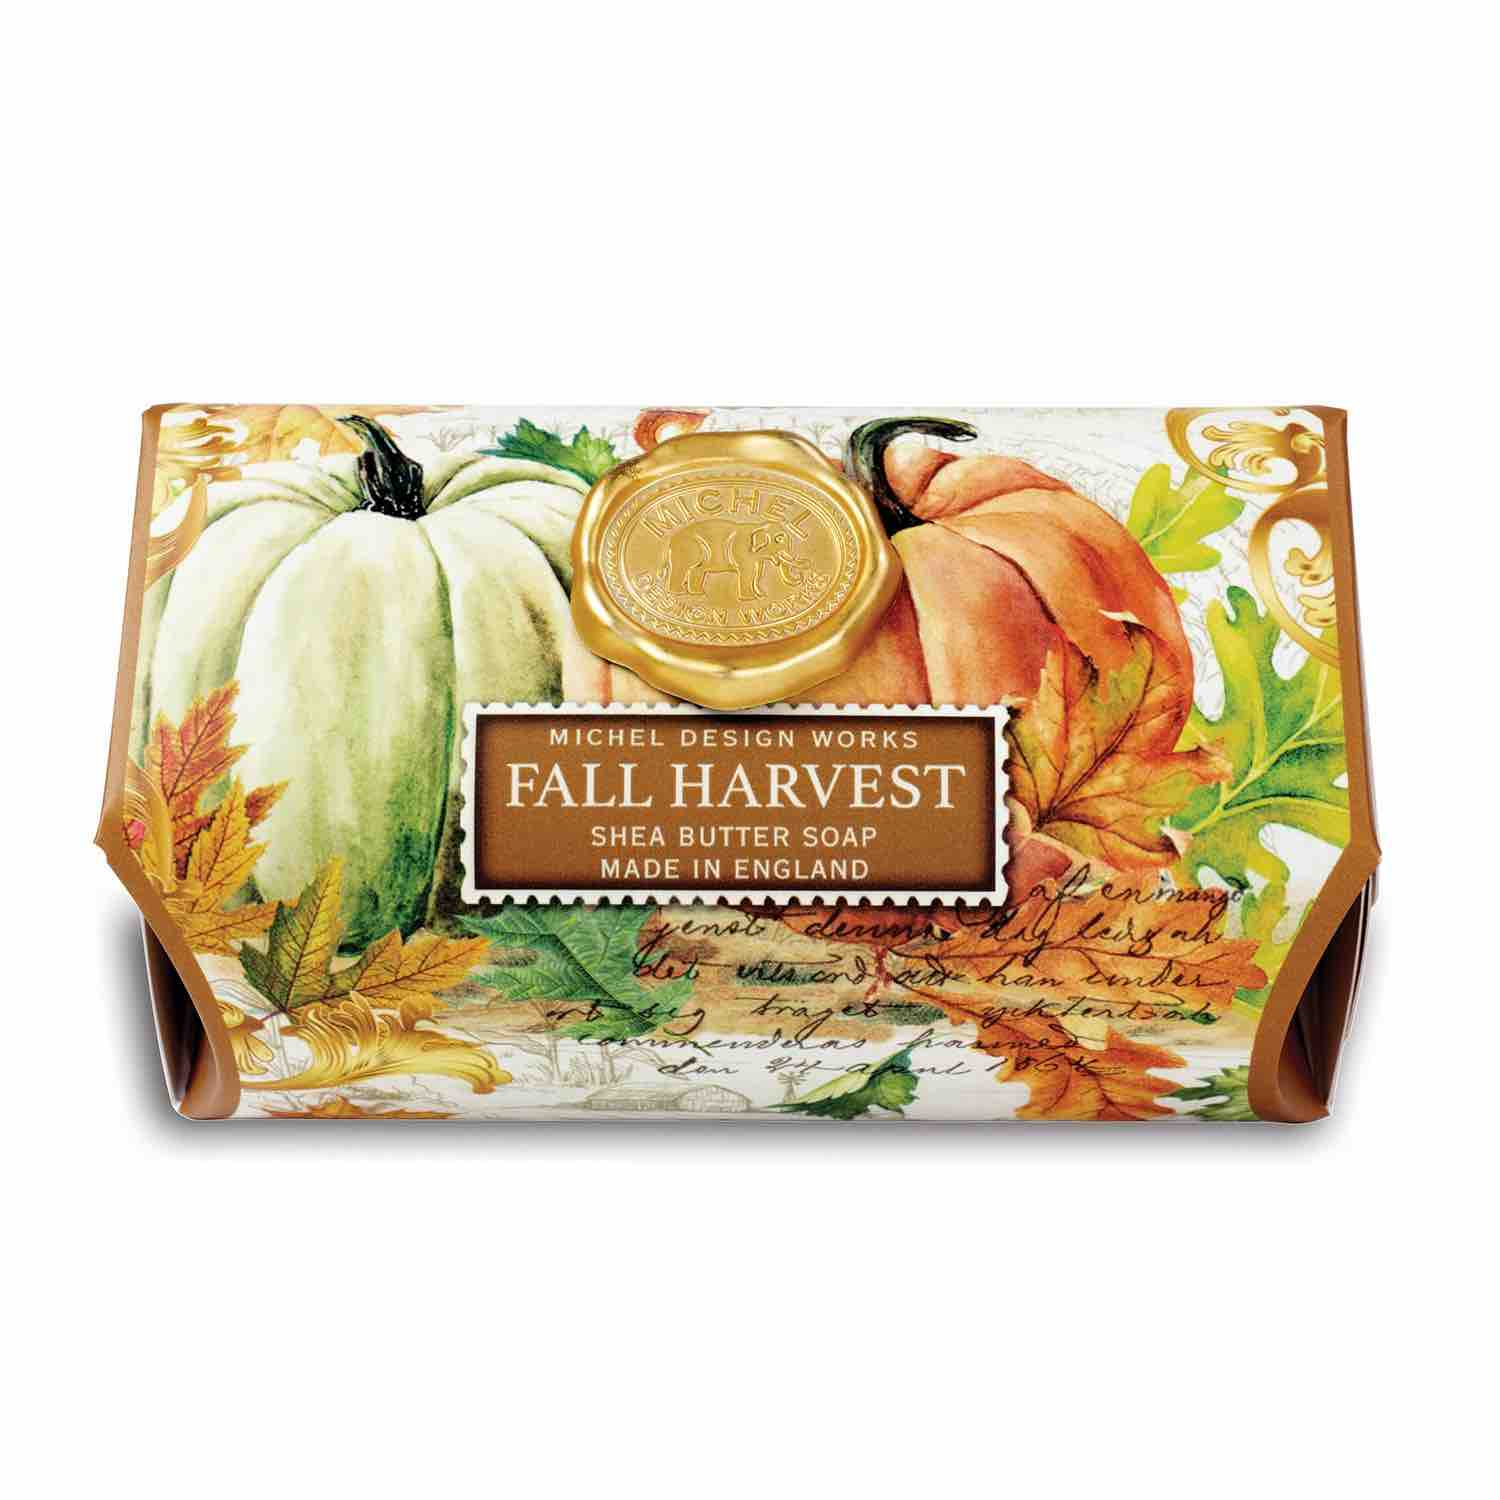 Michel Design Works Large Bath Soap Bar | Fall Harvest